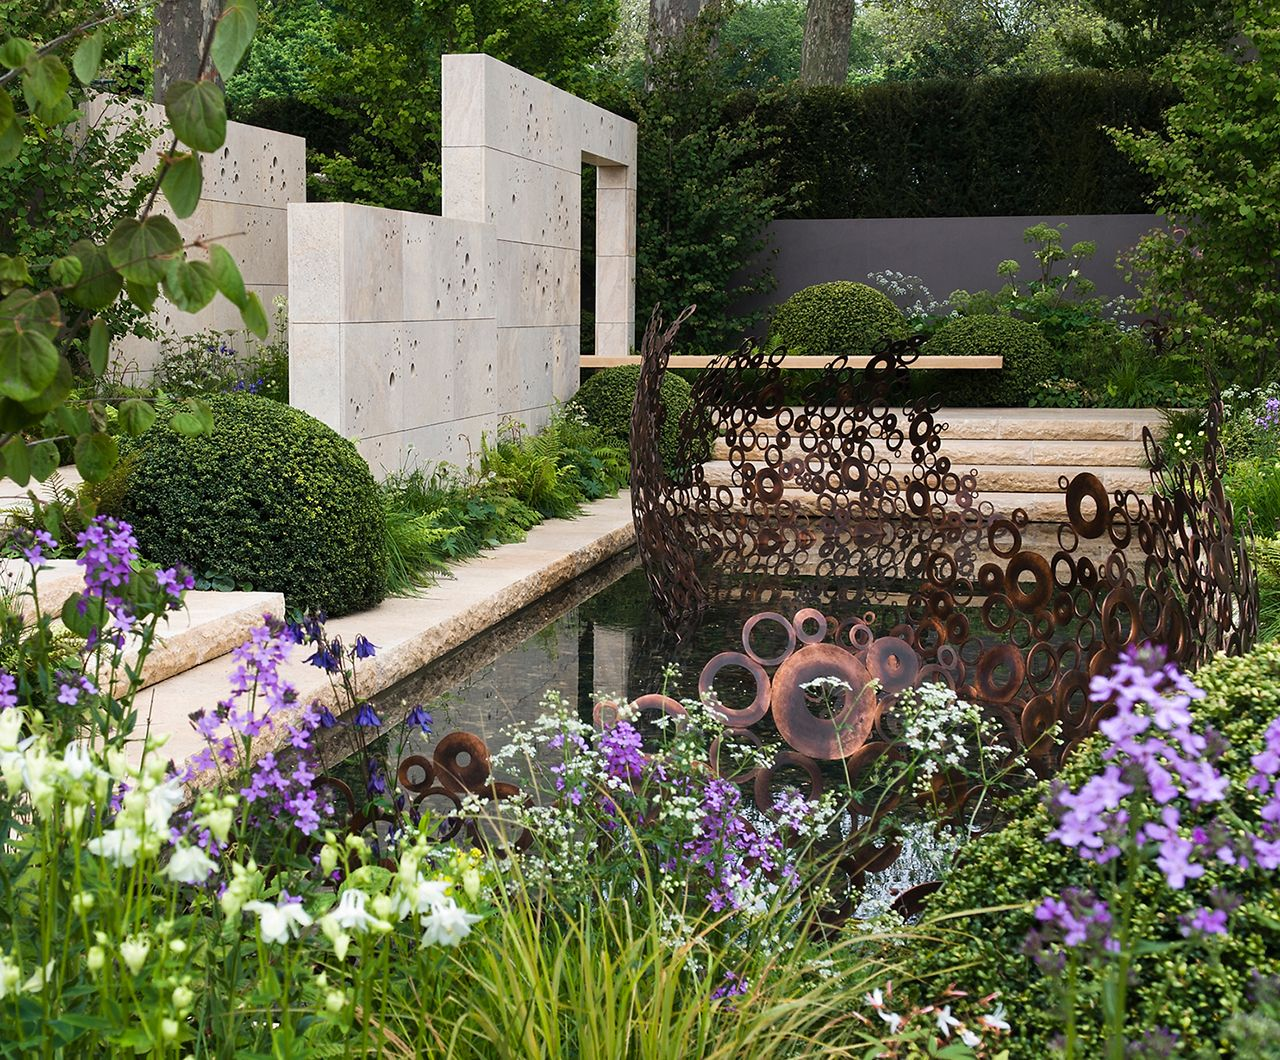 This garden is inspired by the Arts and Crafts movement ...